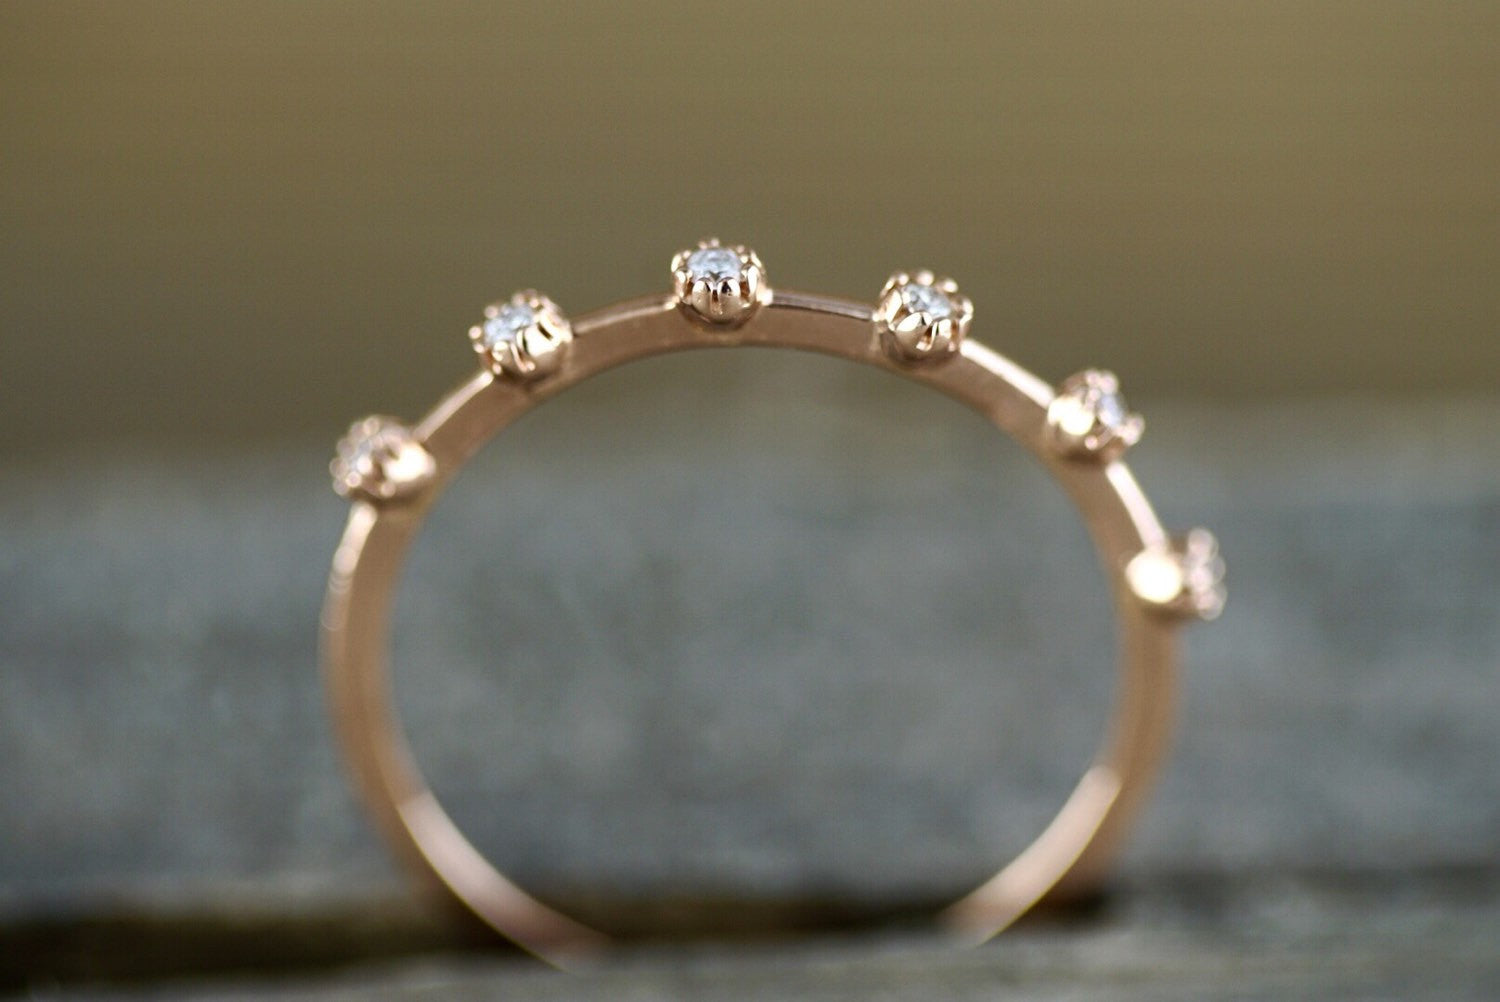 14kt Rose Gold Diamond Vine Large Ring Vintage Design Milgrain Bezel Band